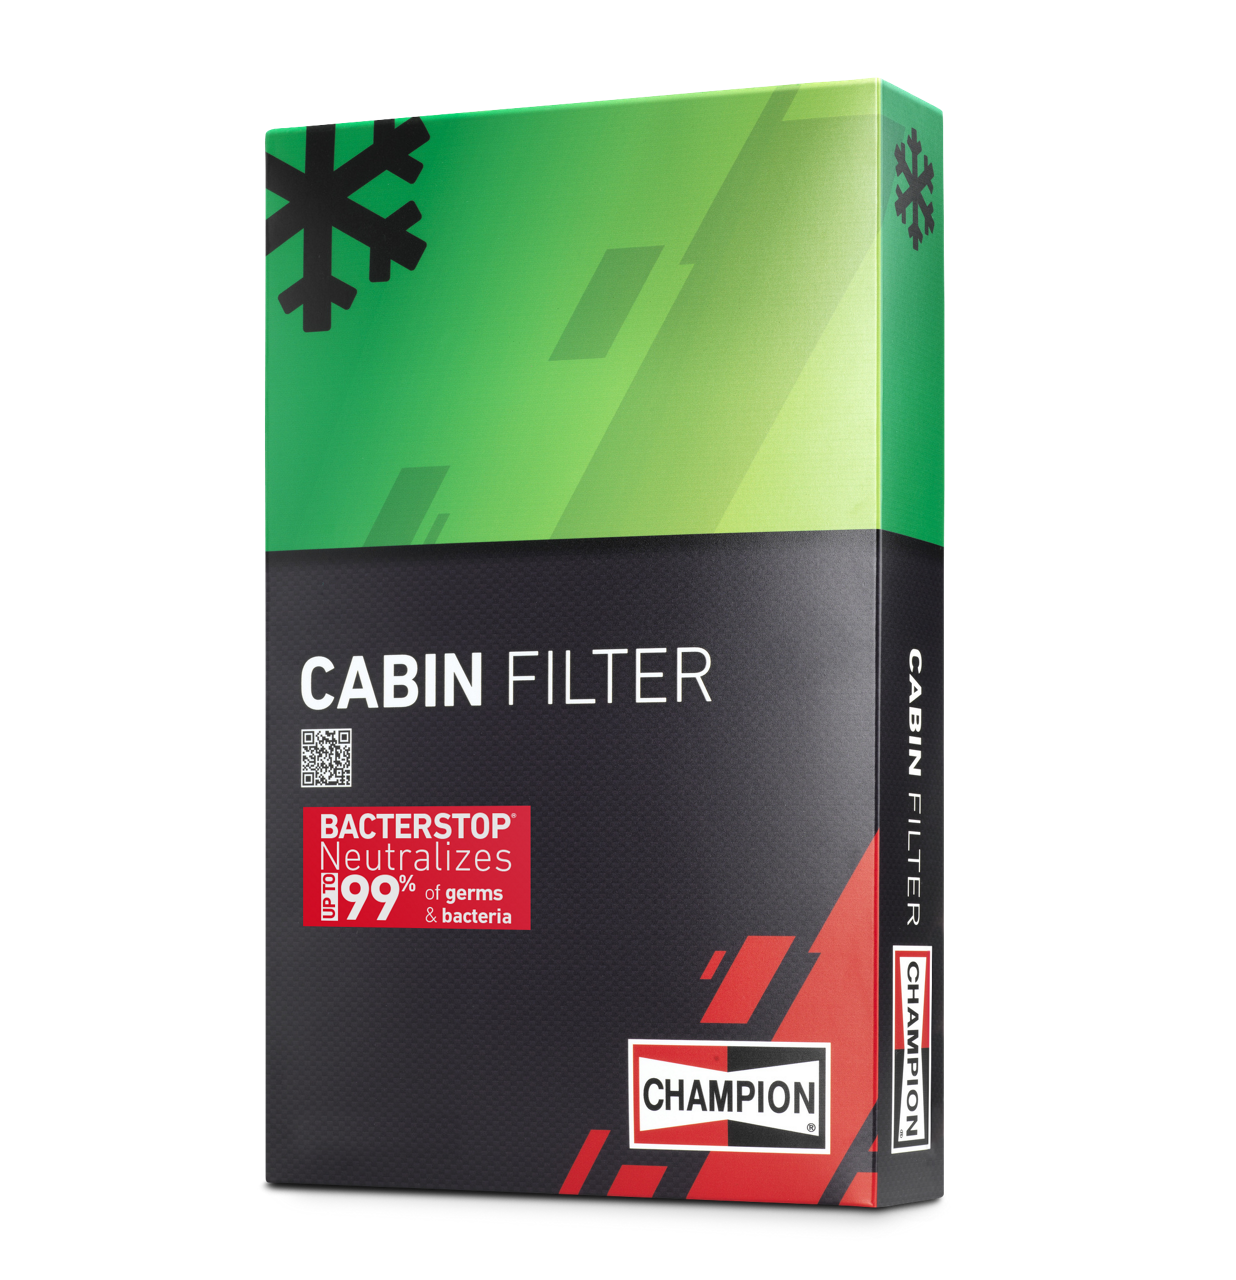 Champion BacterStop Cabin Filters - Antibacterial Cabin Filters